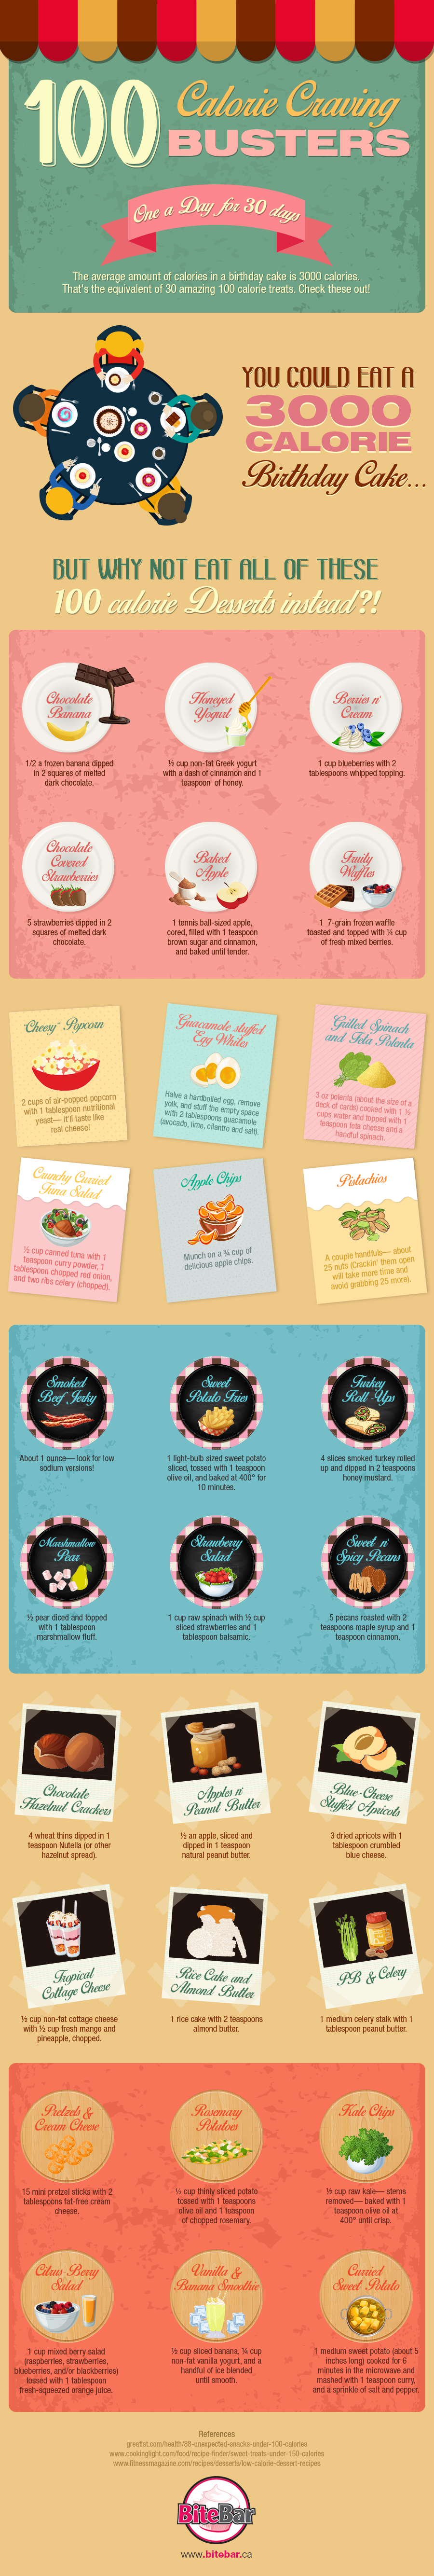 100-Calorie-Desserts-An-infographic